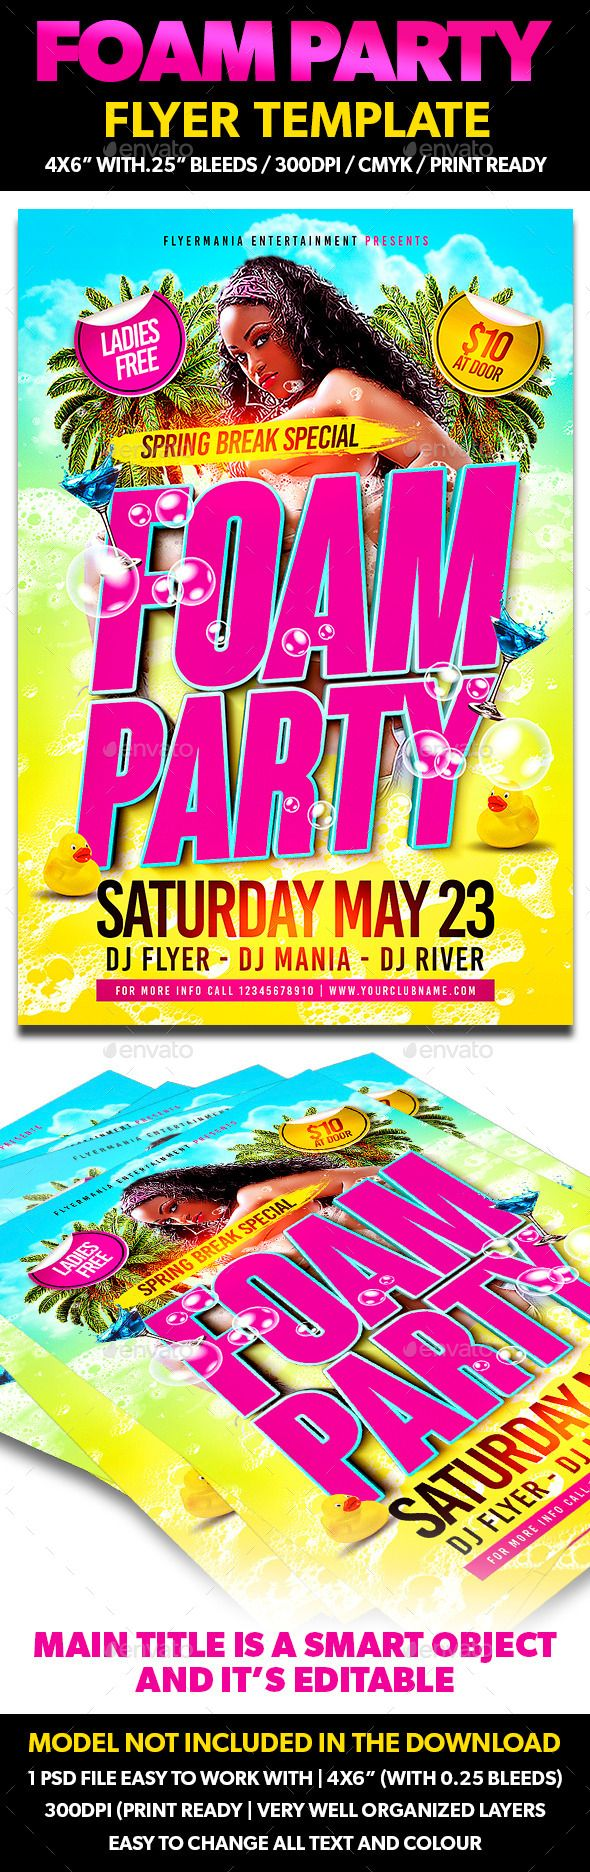 Best The Rig Images On   Foam Party Party Flyer And